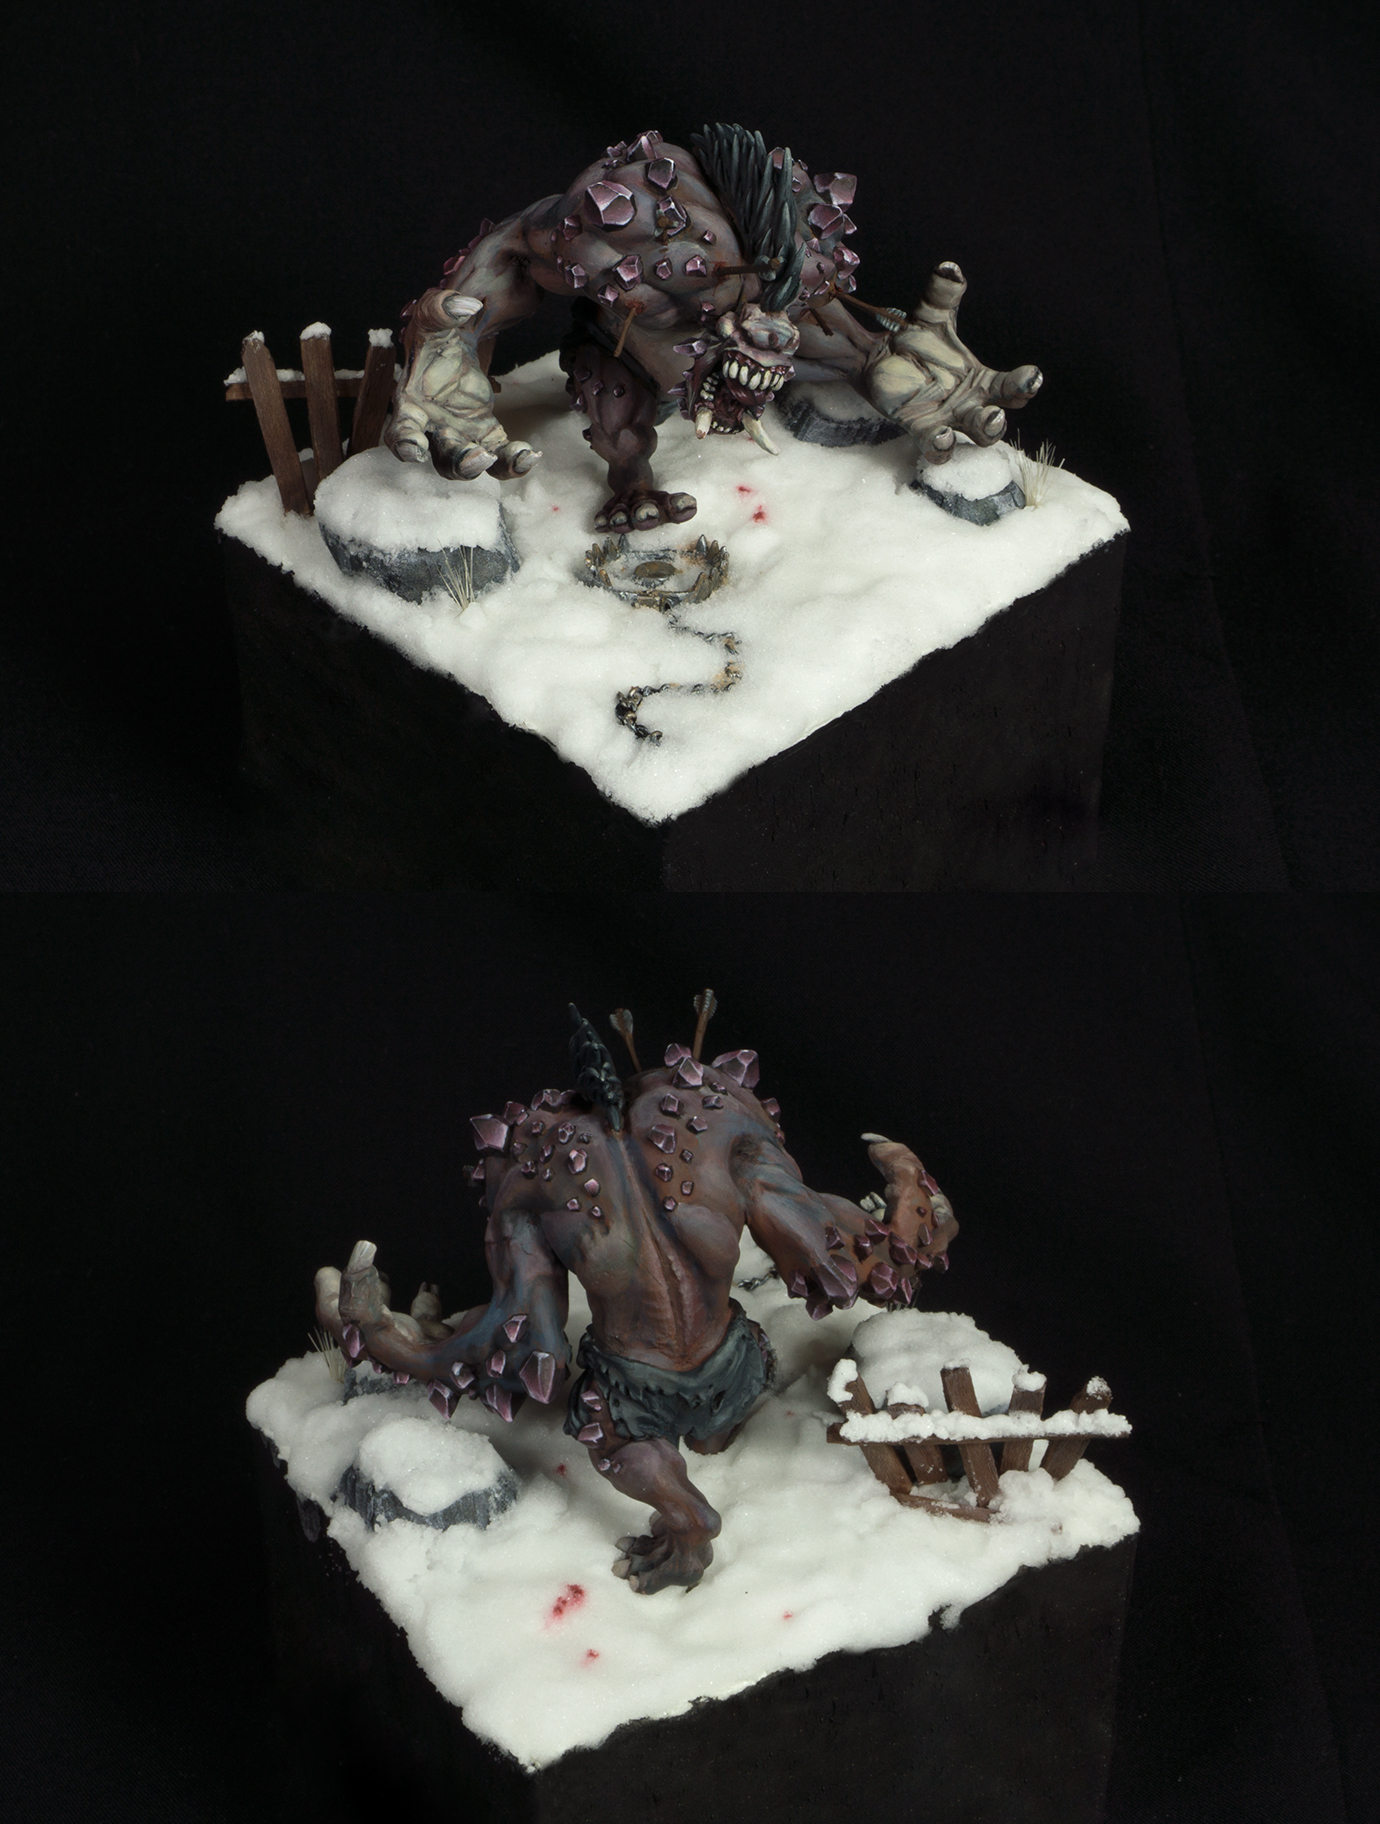 Frost troll of northern darkness